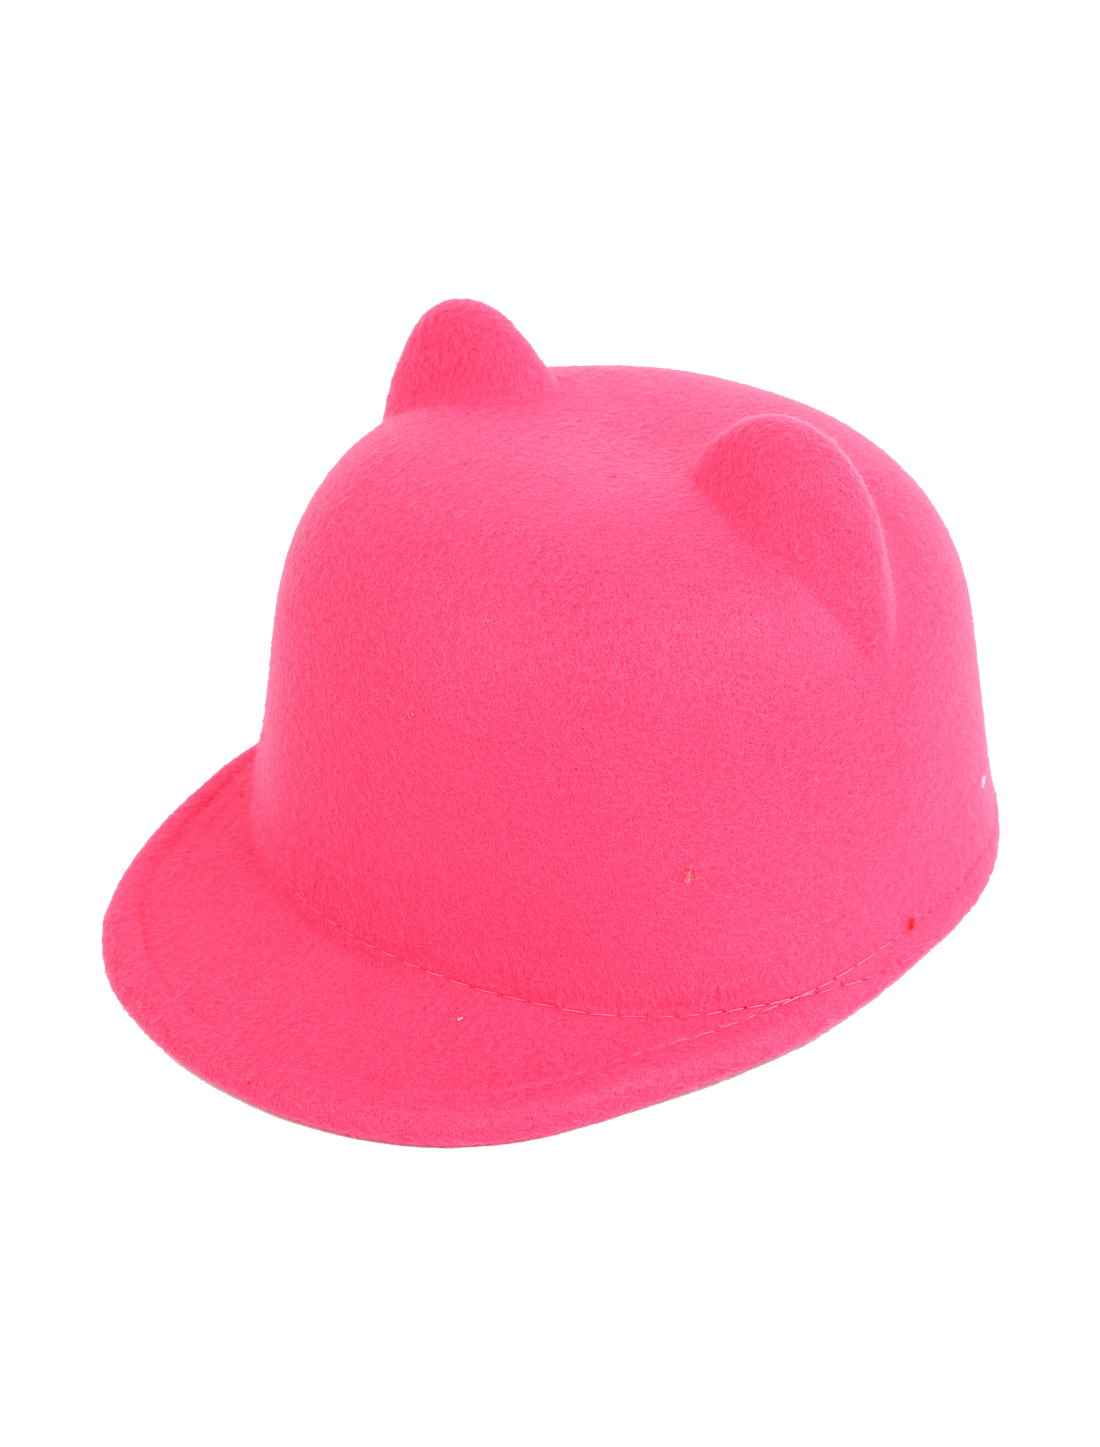 Girl Cat Ear Design Christmas Party Winter Warm Bowler Cap Hat Casquette Pink